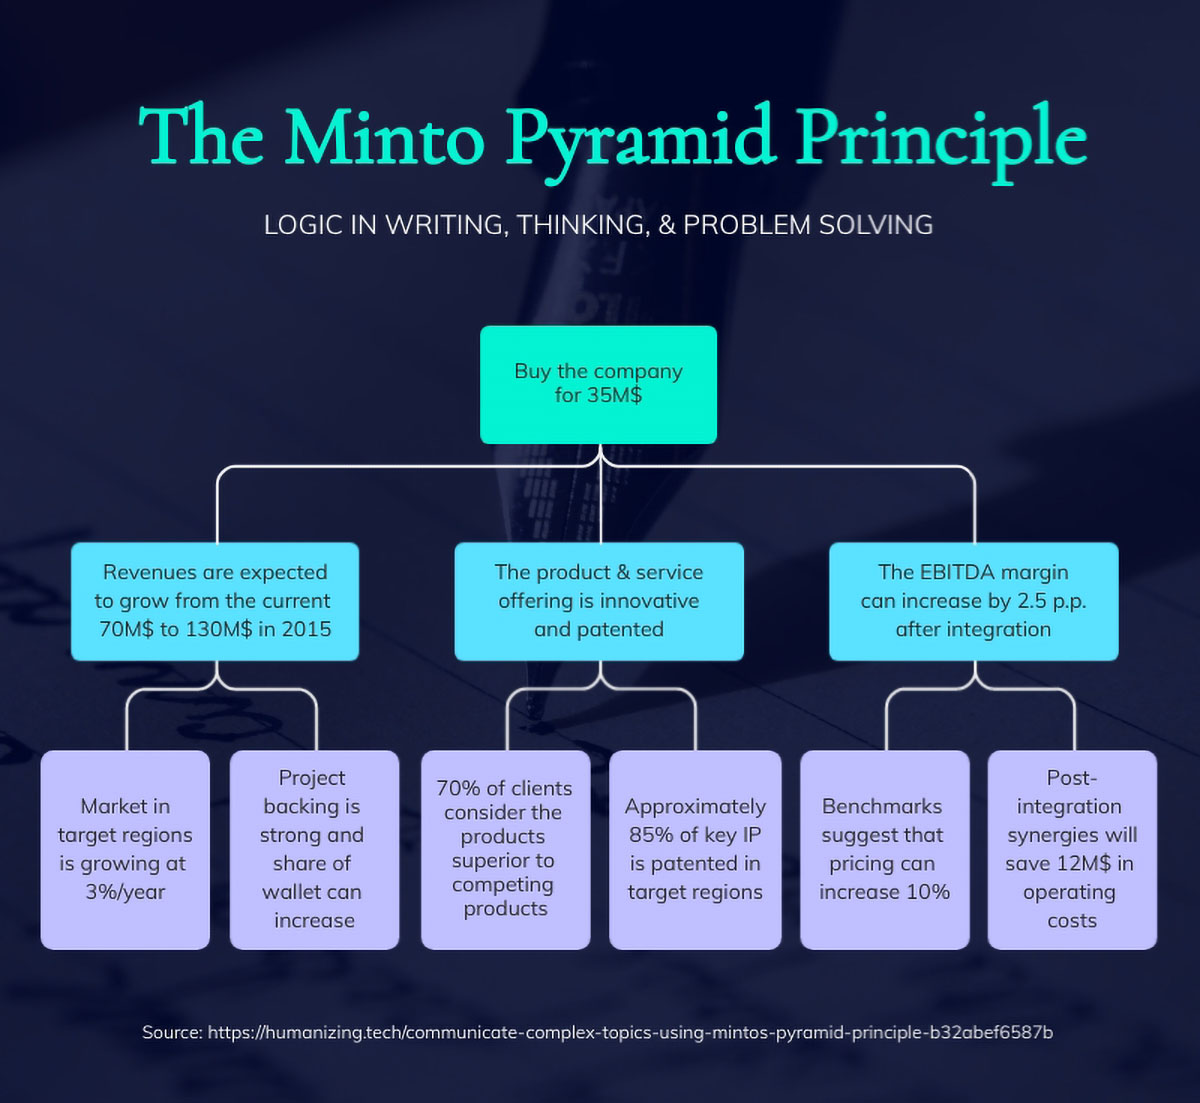 marketing presentation - the minto pyramid principle